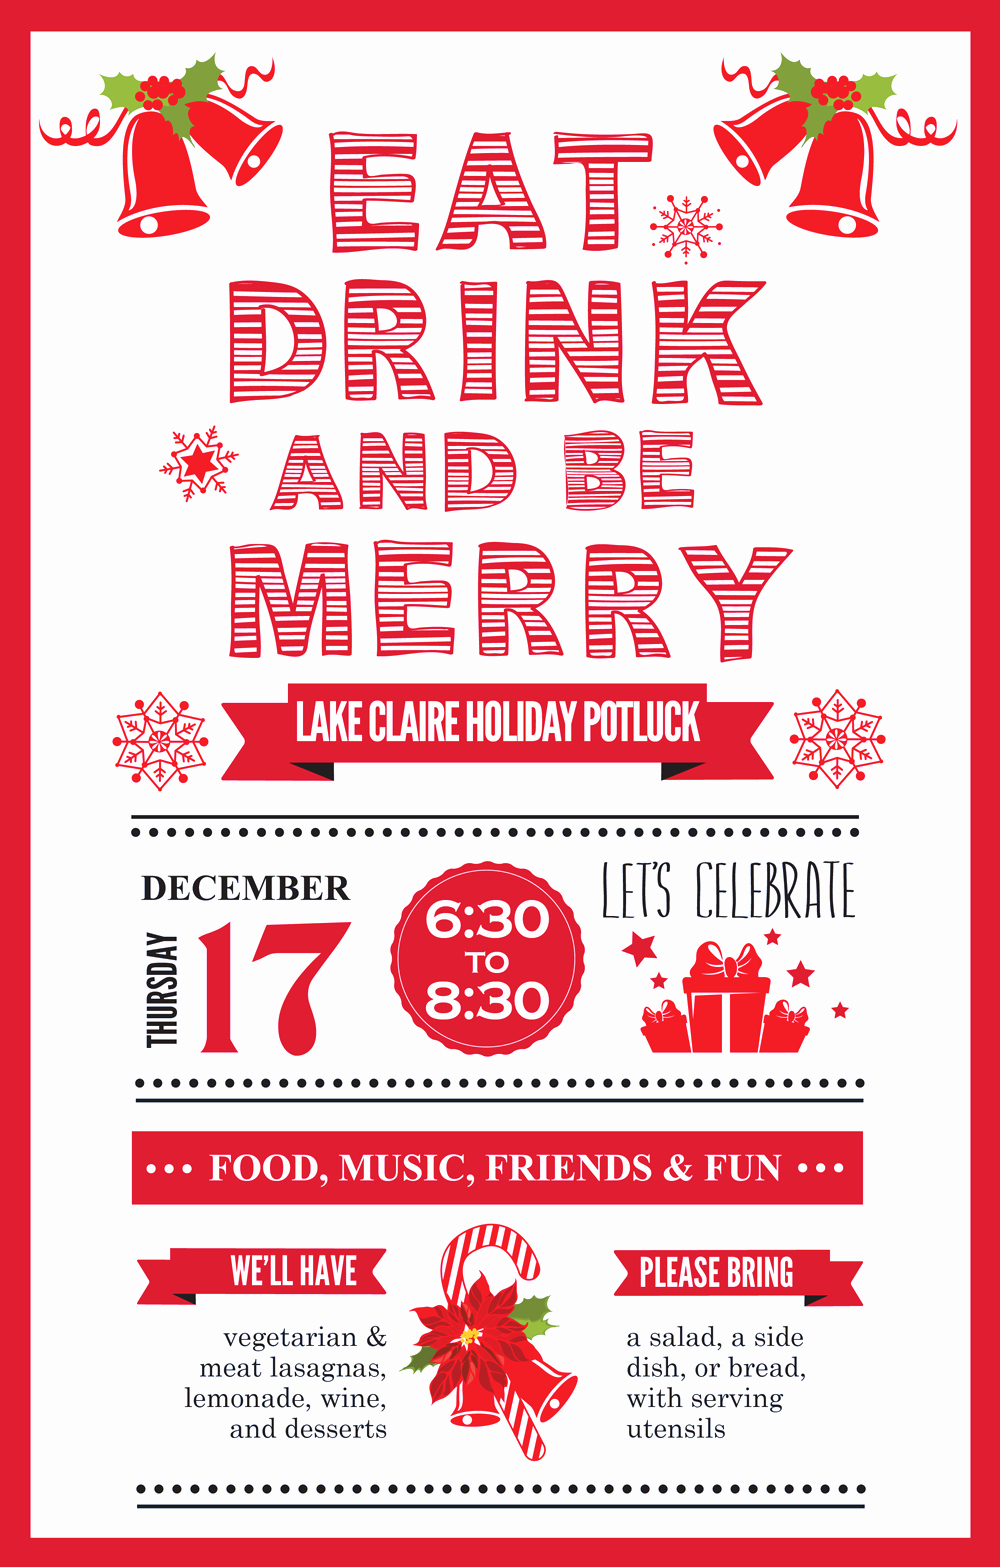 Christmas Potluck Sign Up Sheet Luxury Lake Claire Holiday Potluck 12 17 6 30 Pm – Lake Claire